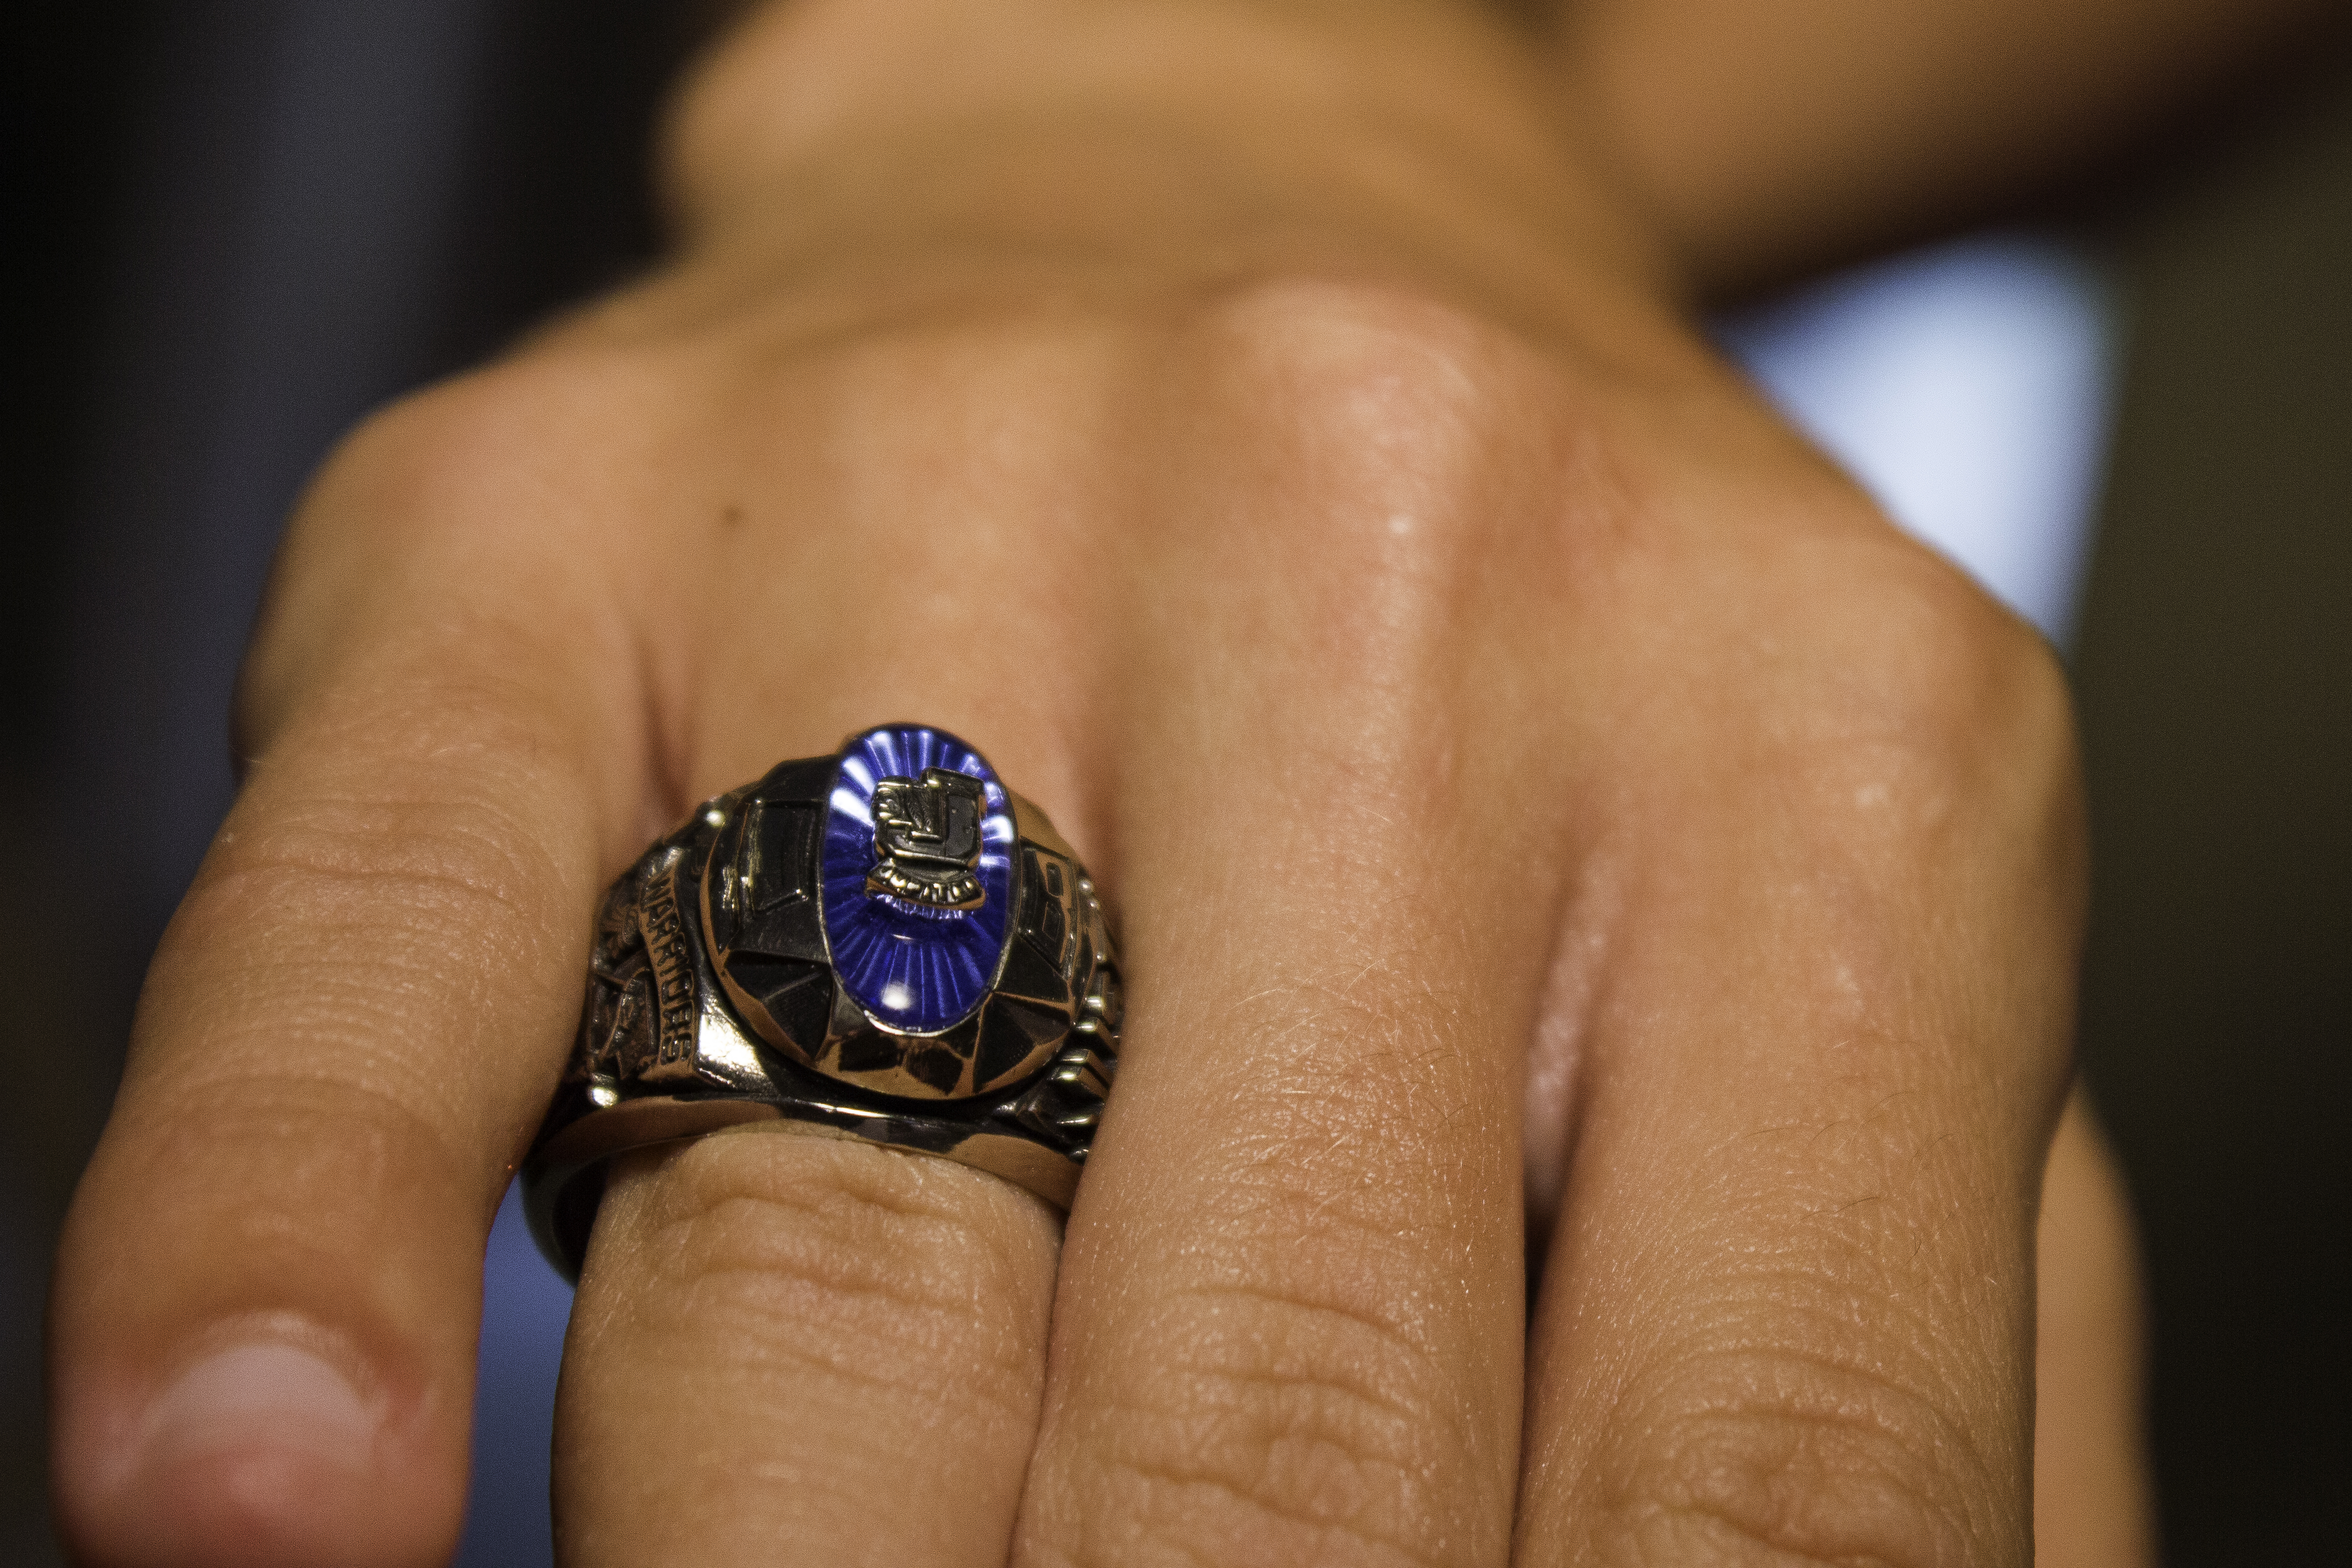 Wear Your Class Ring So That The Insignia Is Readable When Your Arm Is  Outstretched This Is According To The